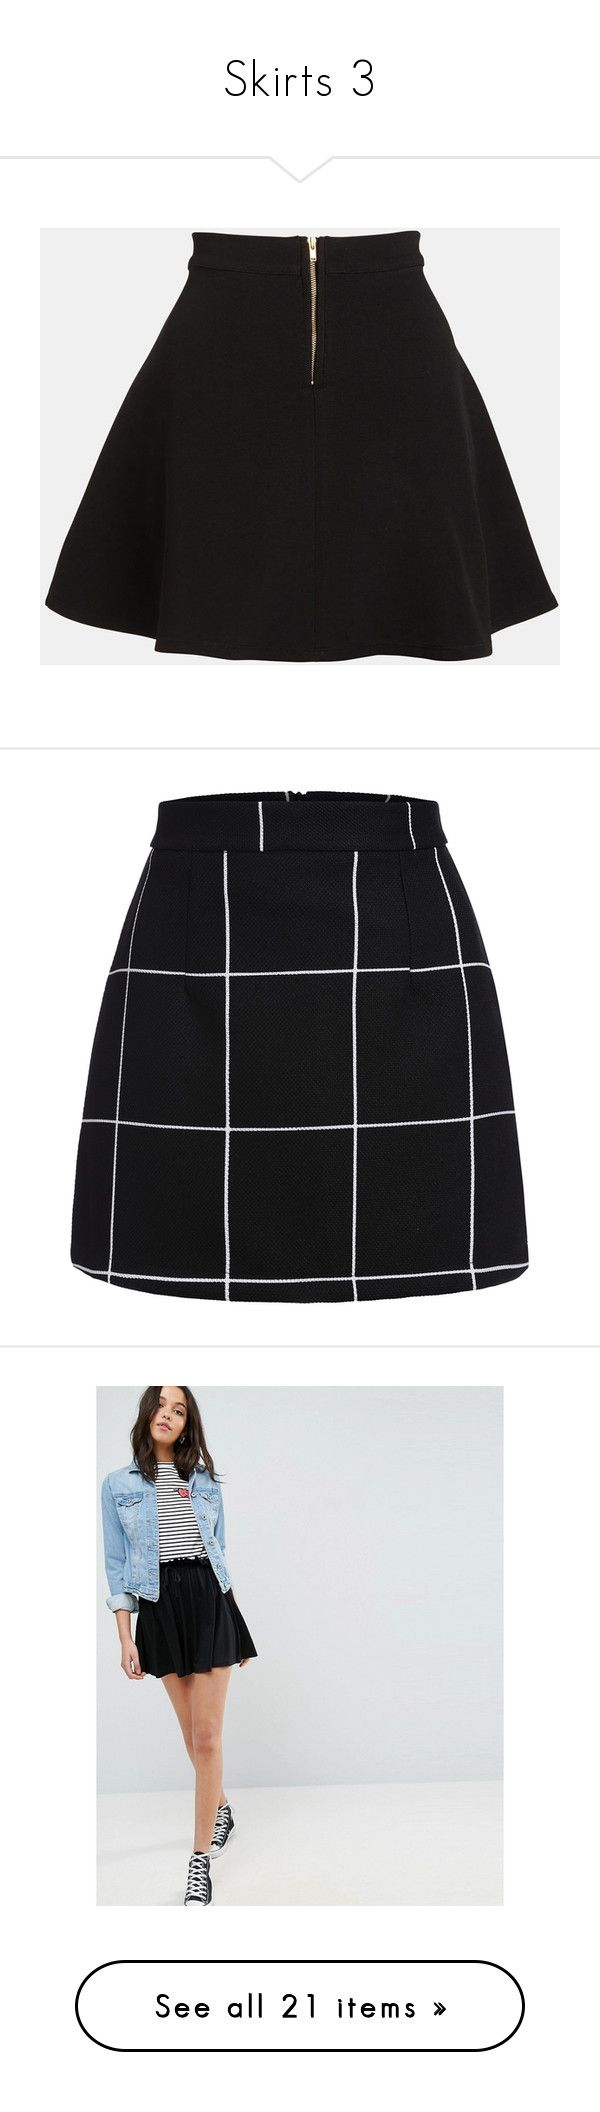 """""""Skirts 3"""" by nelly-vasquez ❤ liked on Polyvore featuring skirts, bottoms, pants, black, ponte circle skirt, ponte skirt, flared skirts, circle skirts, parker skirt and mini skirts"""